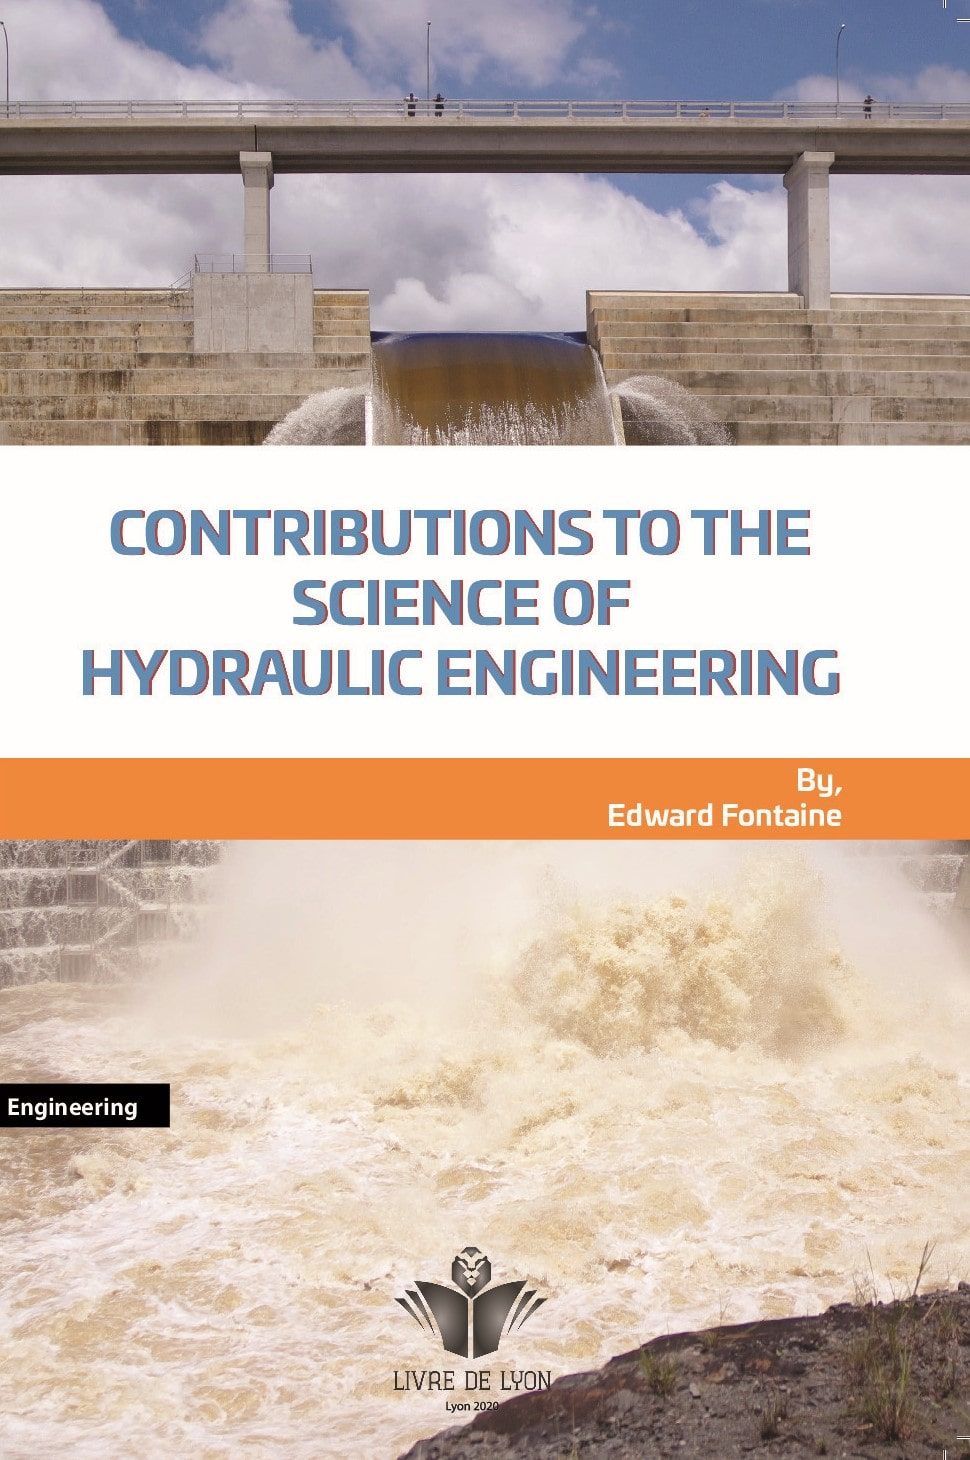 Contributions to the Science of Hydraulic Engineering